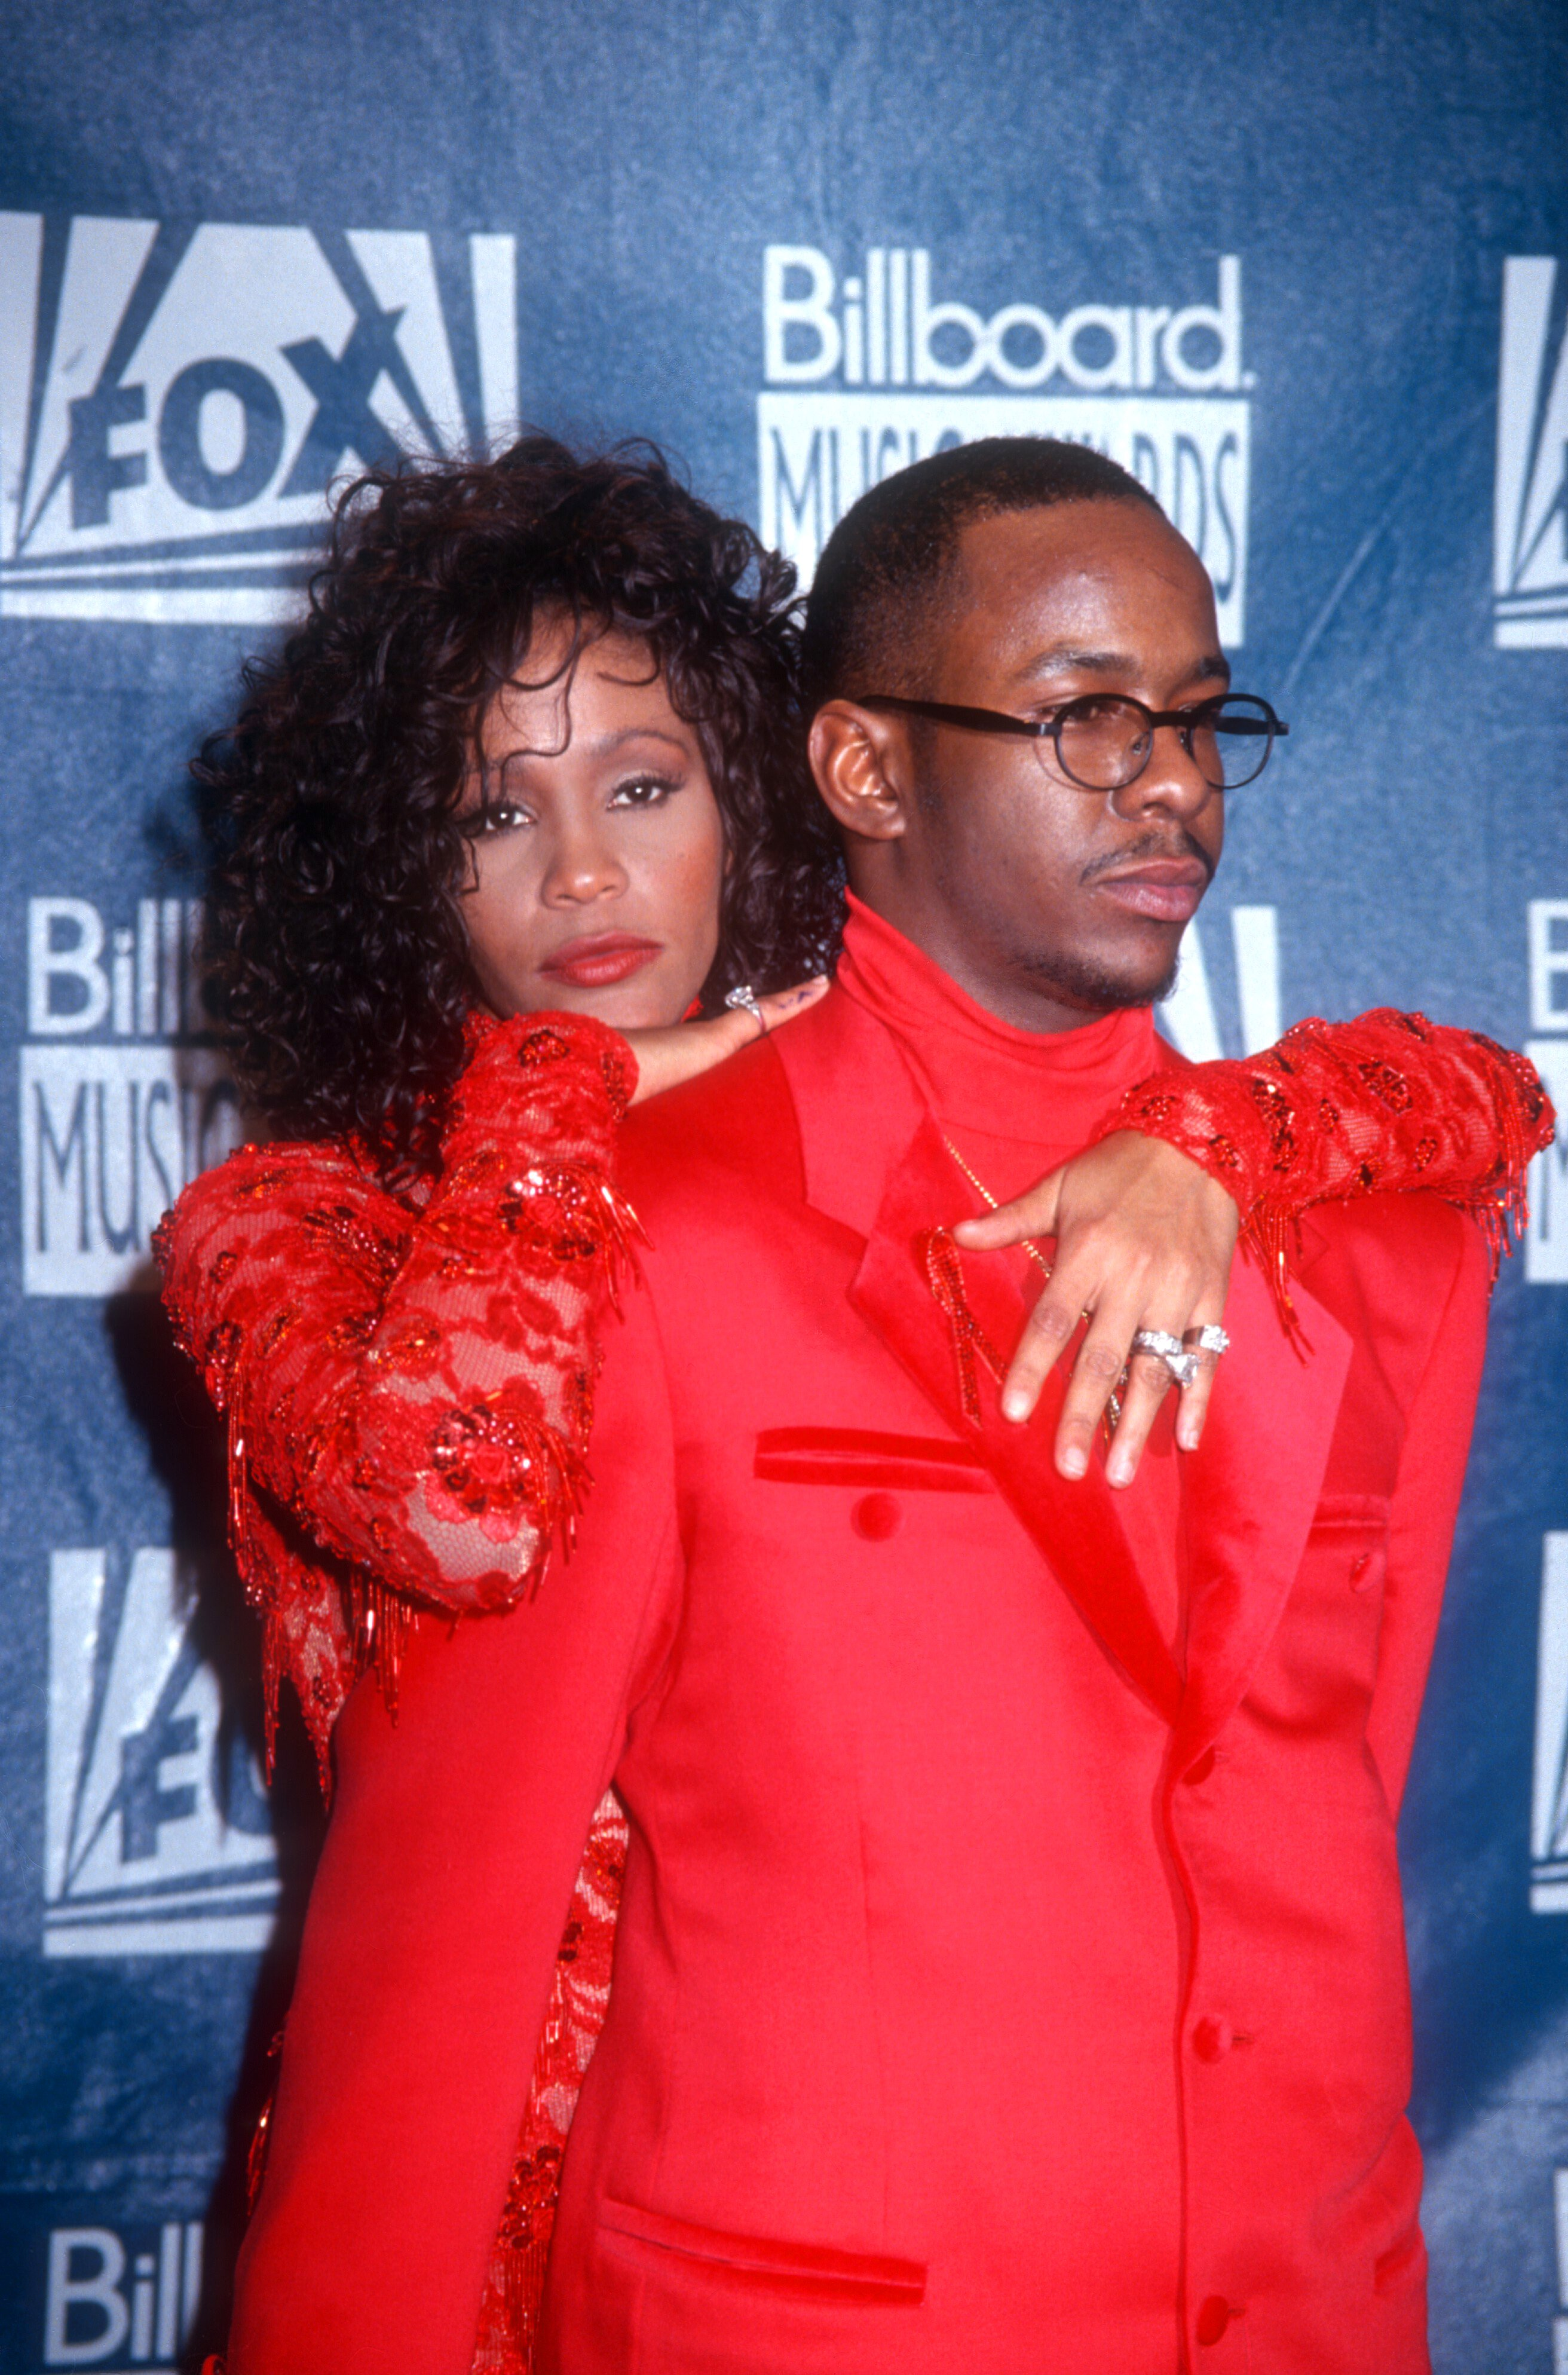 Bobby Brown and Whitney Houston at the 1993 Billboard Music Awards at the Universal Amphitheater, California   Photo: Getty Images